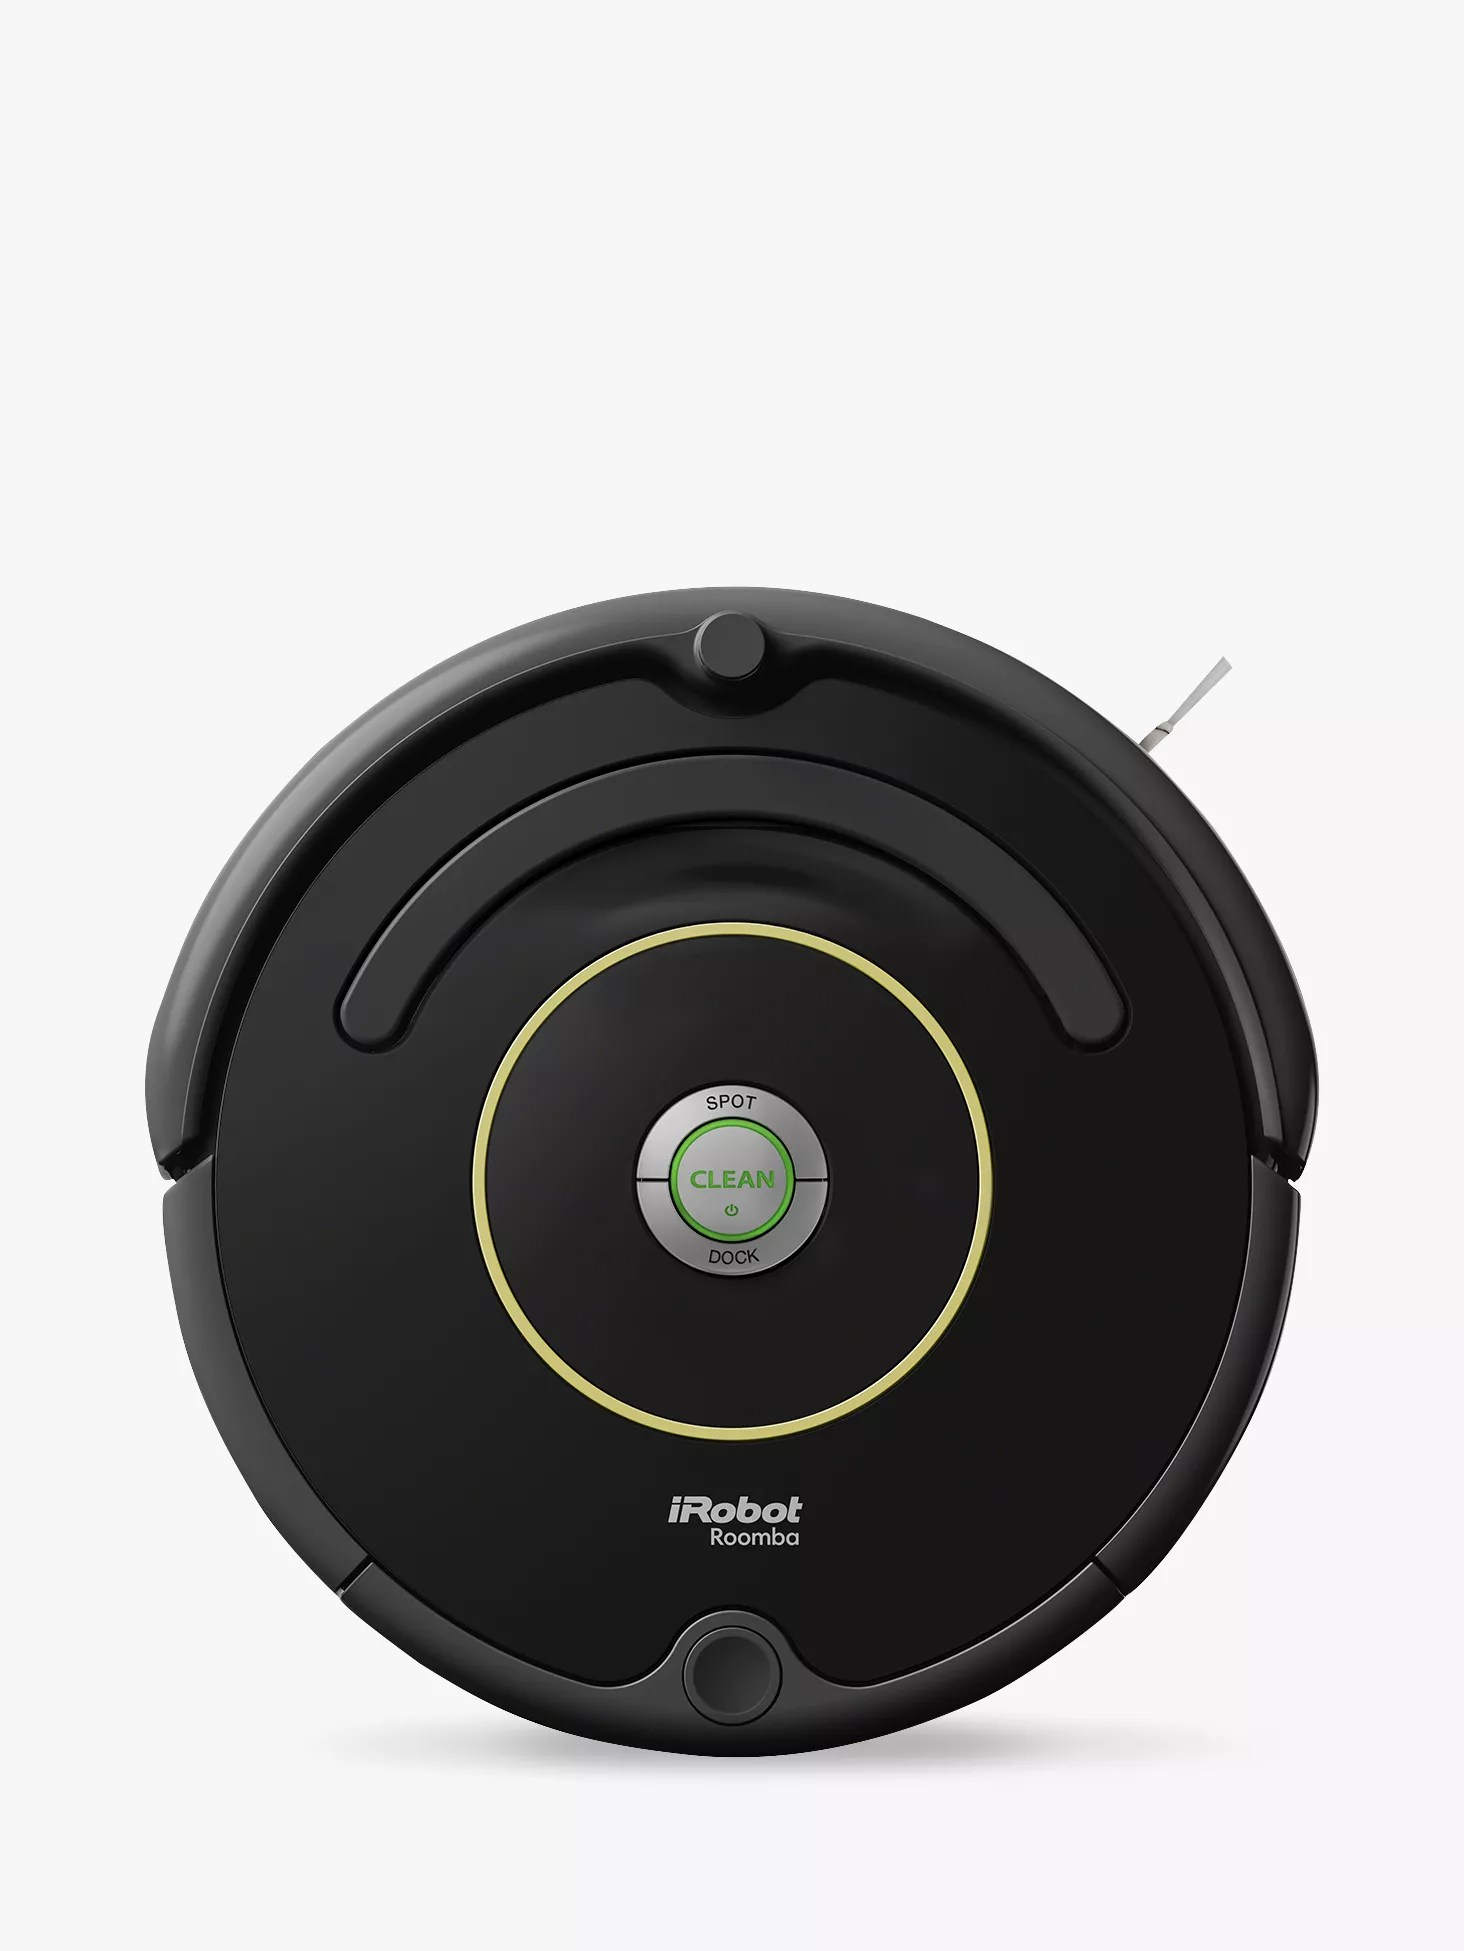 baby chair roomba red and black gaming staples irobot 612 robot vacuum cleaner at john